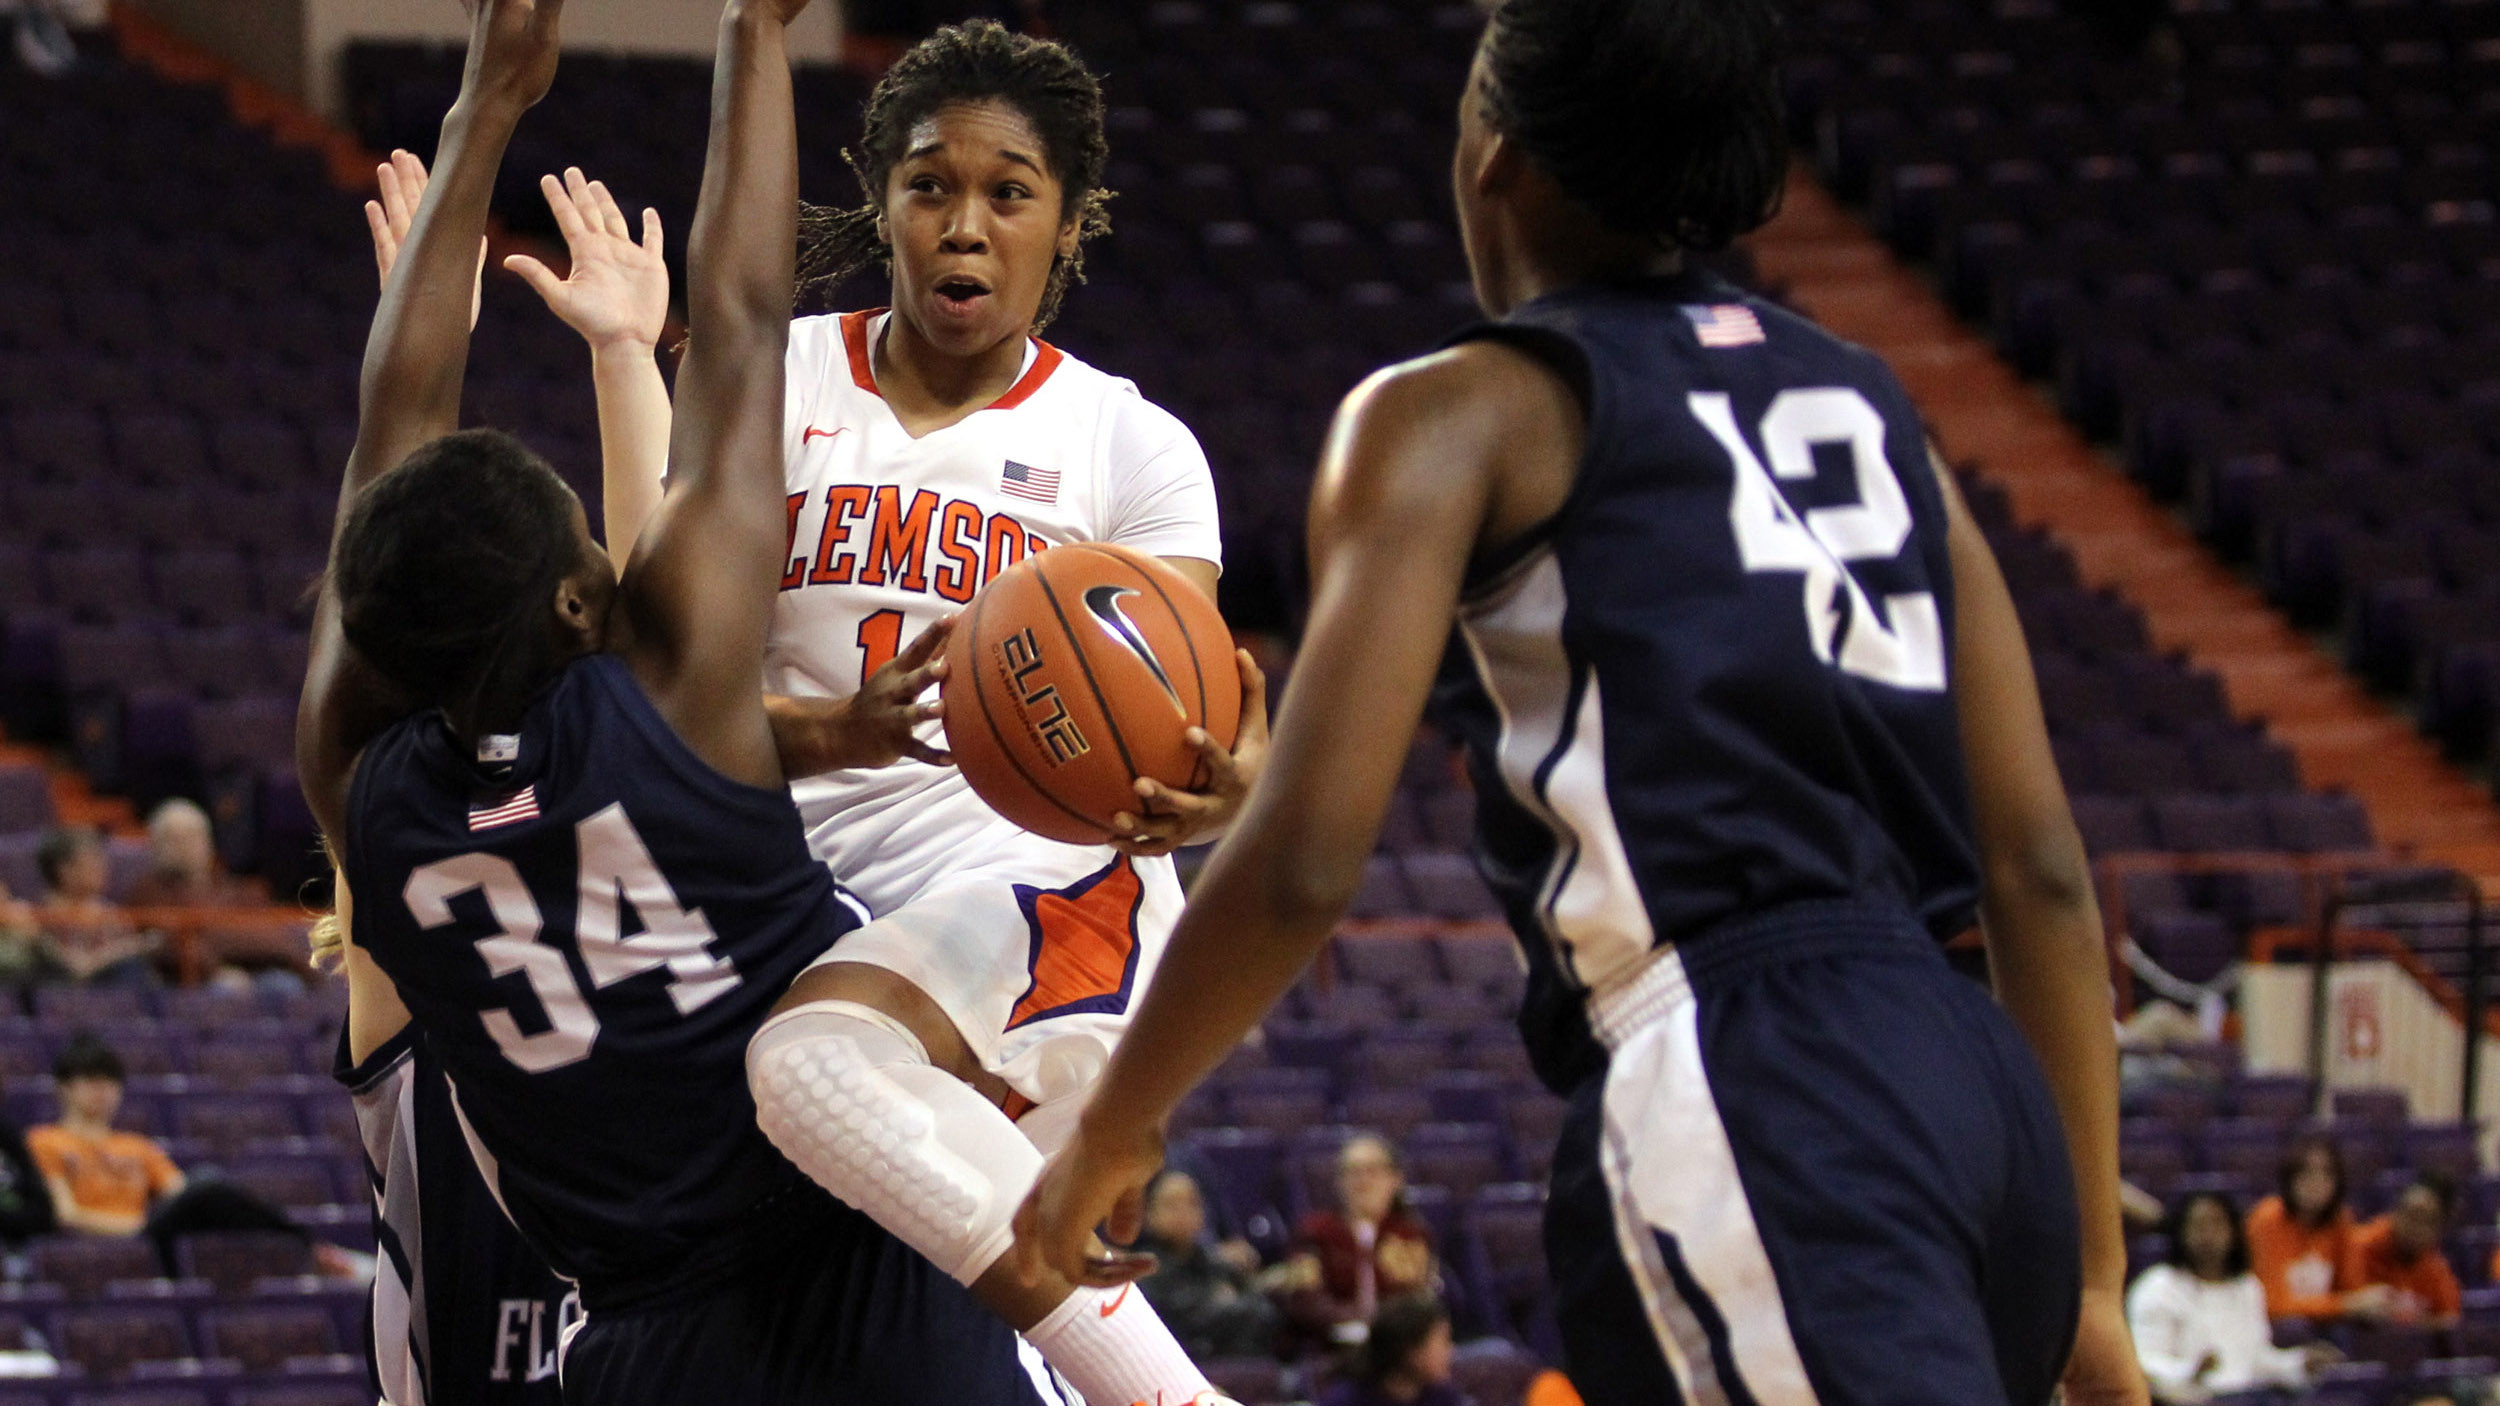 @ClemsonWBB Holds on for 56-52 Win Over Creighton